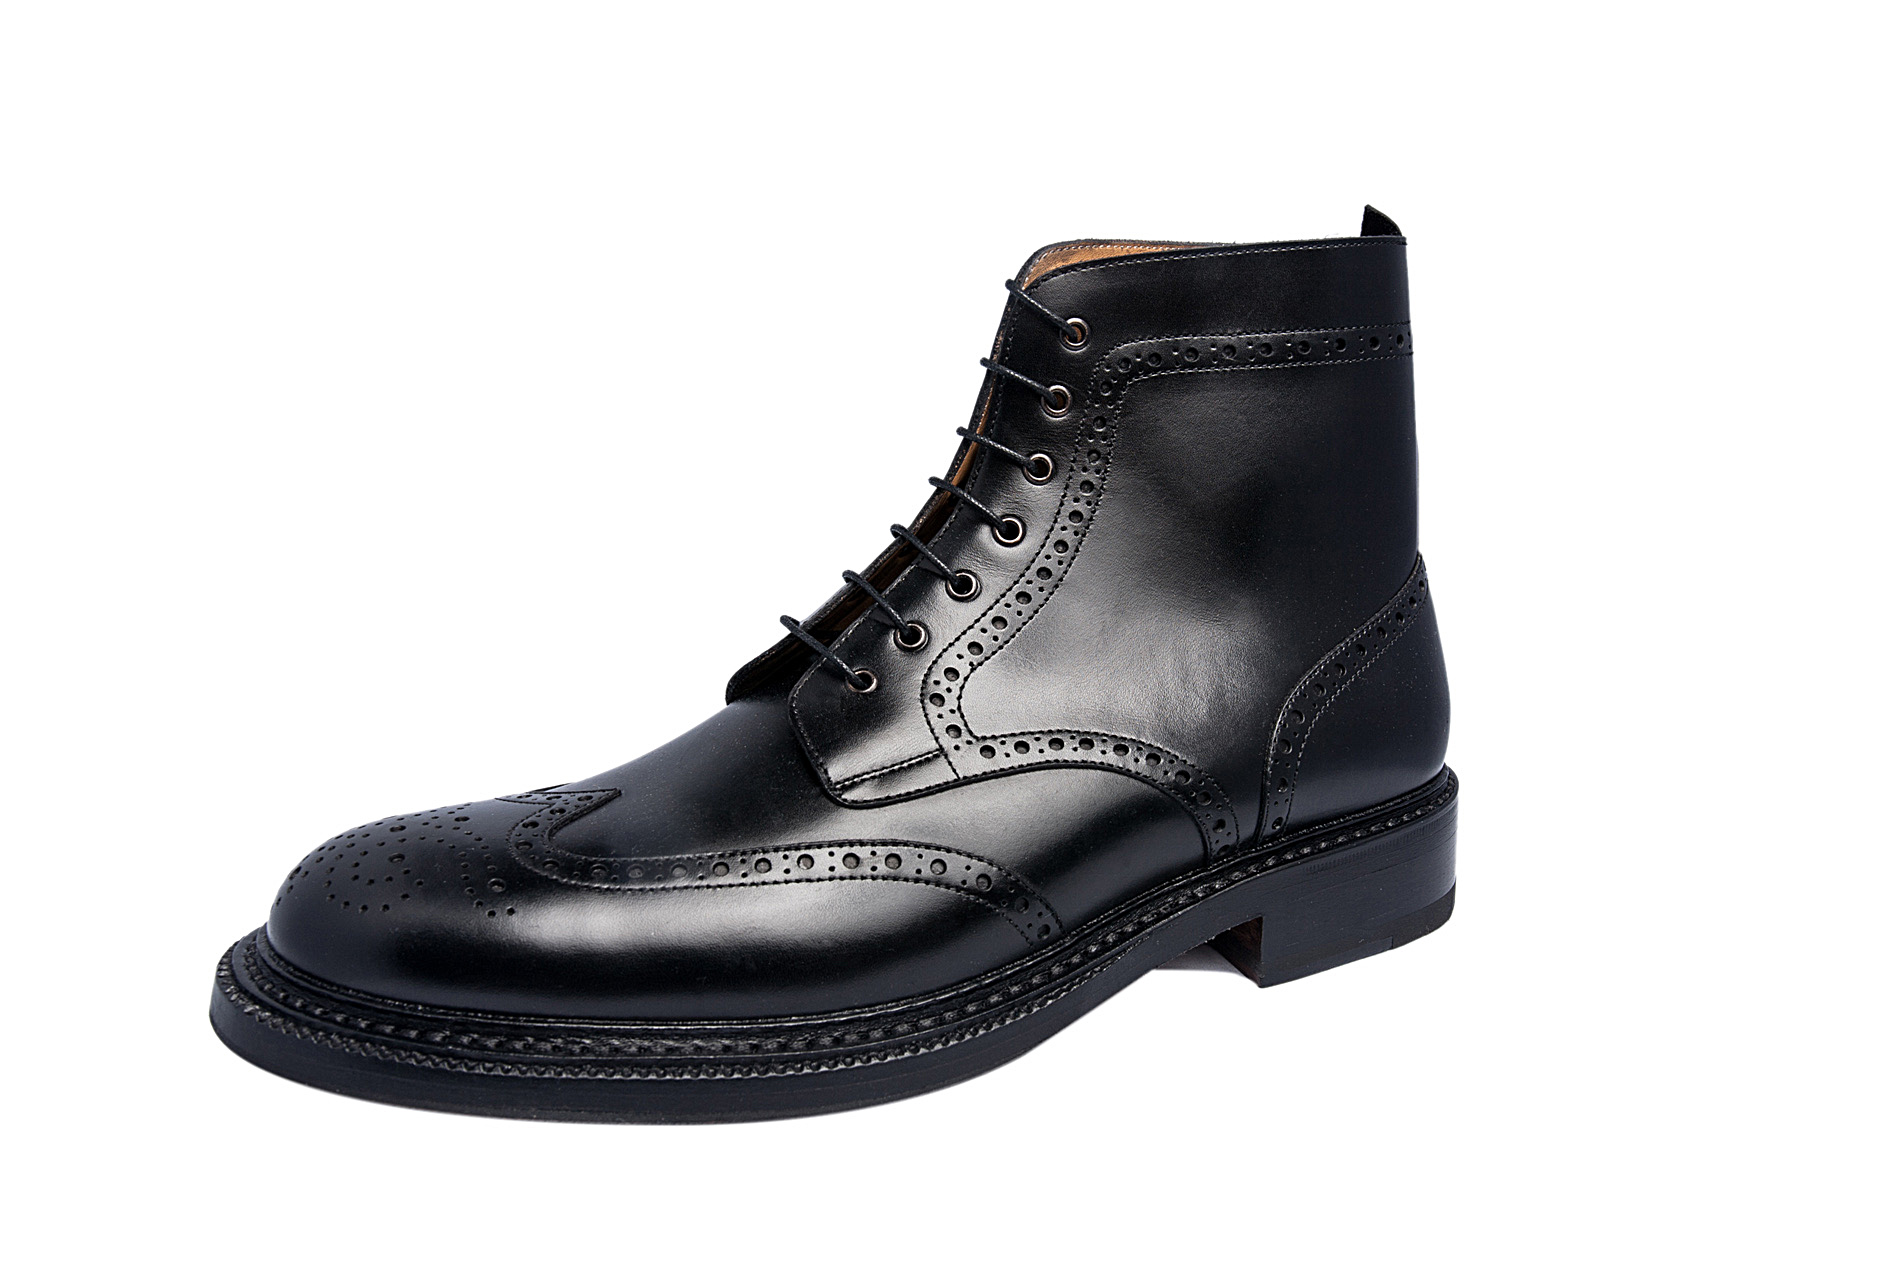 huge selection of 100% authentic multiple colors Brogue lace-up derby boot